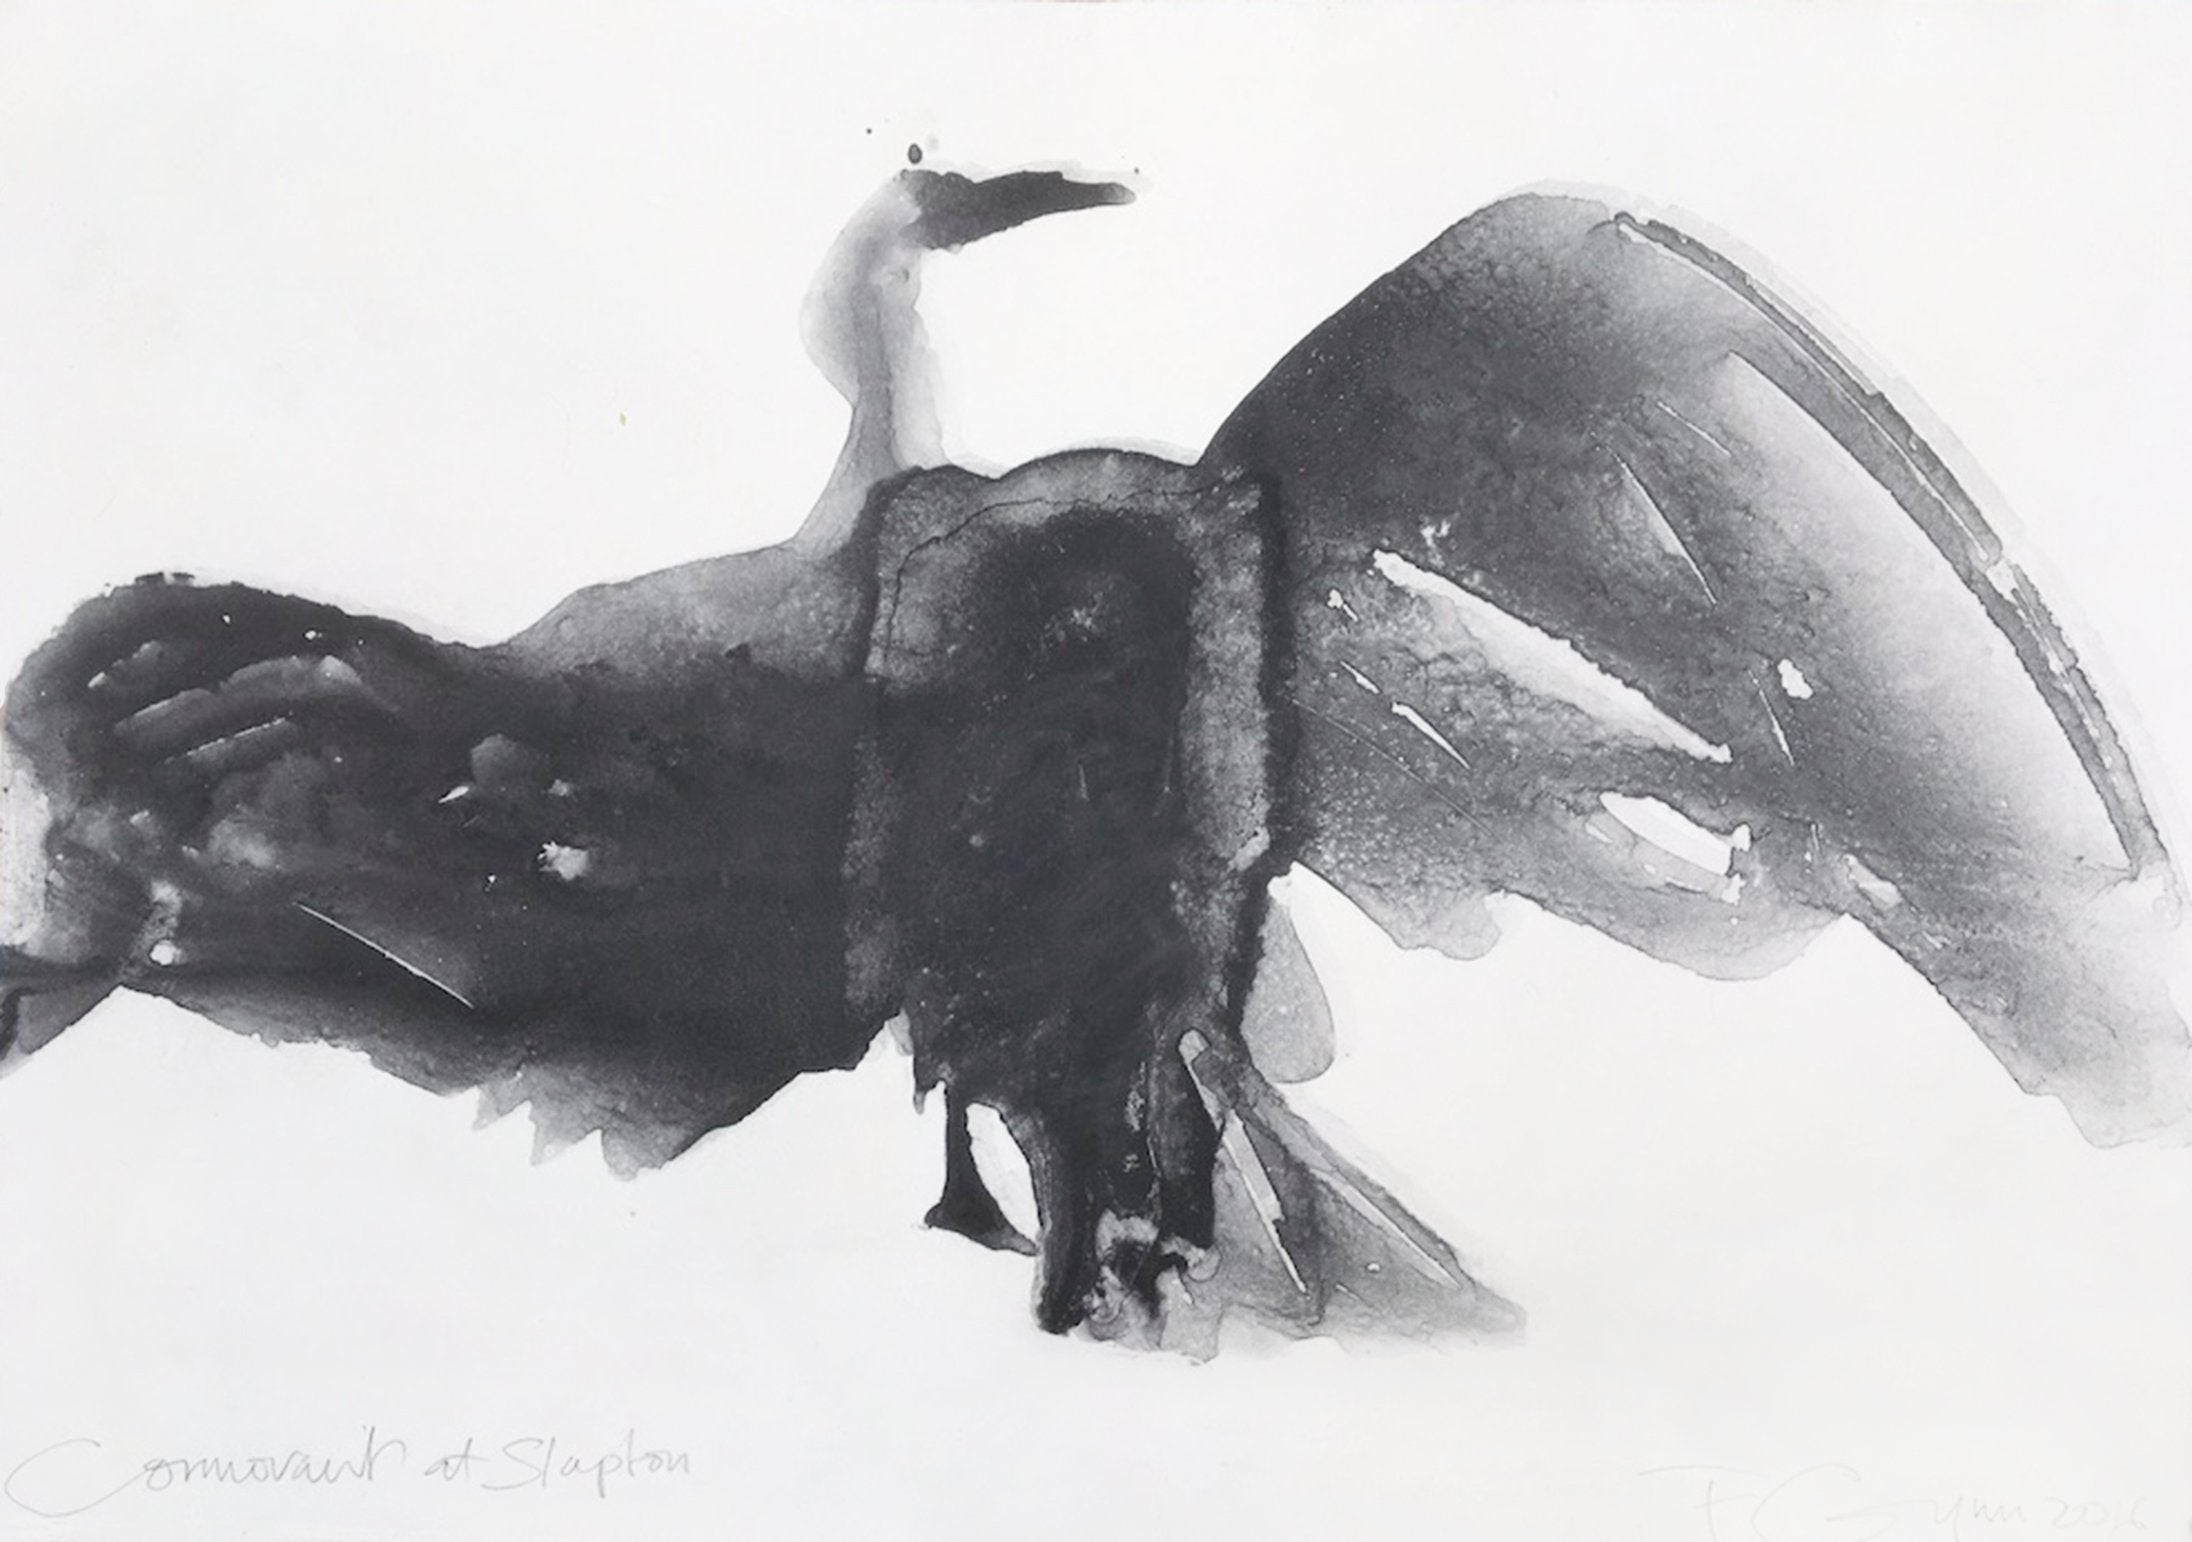 'Cormorant at Slapton', an observational monotype by contemporary, woman artist Frances Gynn